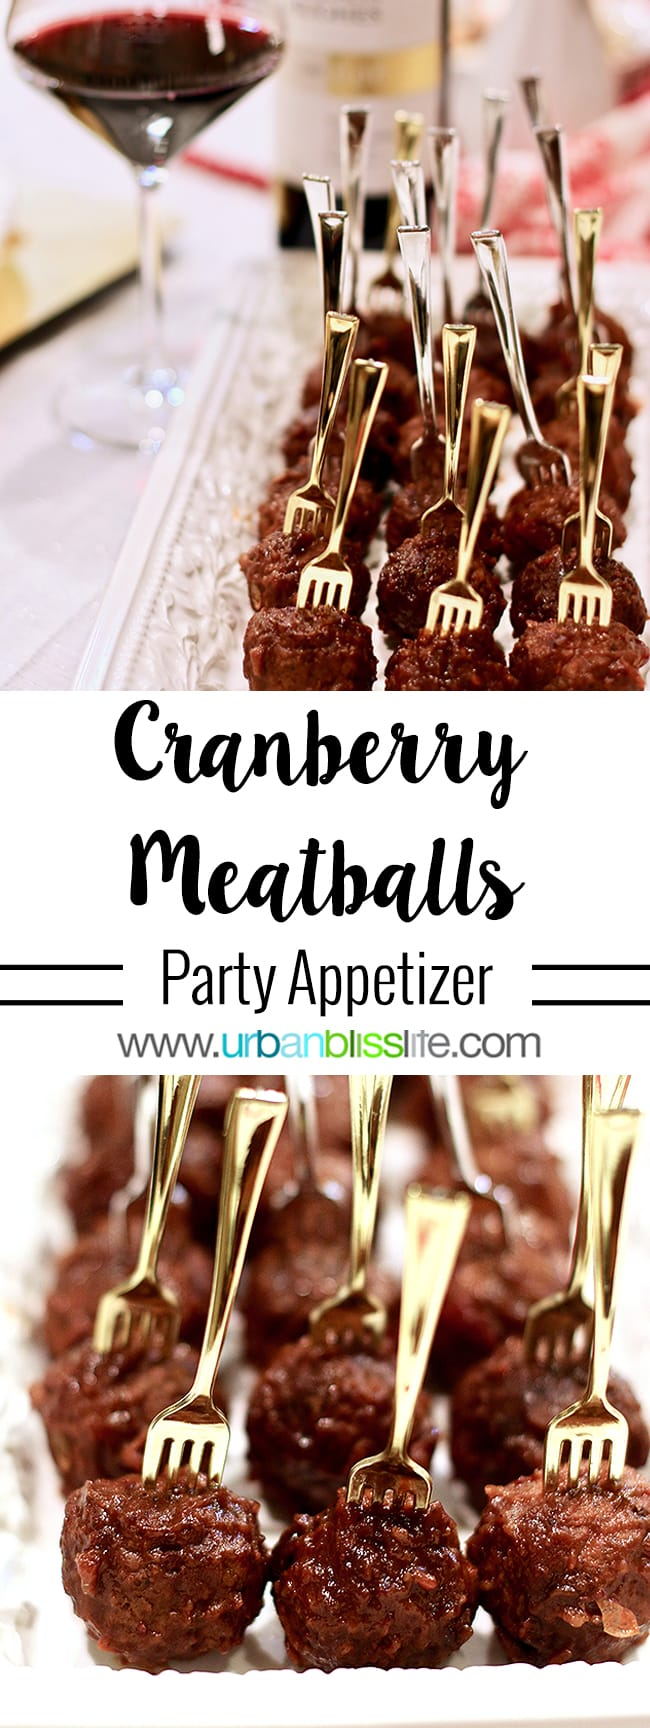 Cranberry Meatballs Party Appetizer recipe on UrbanBlissLife.com